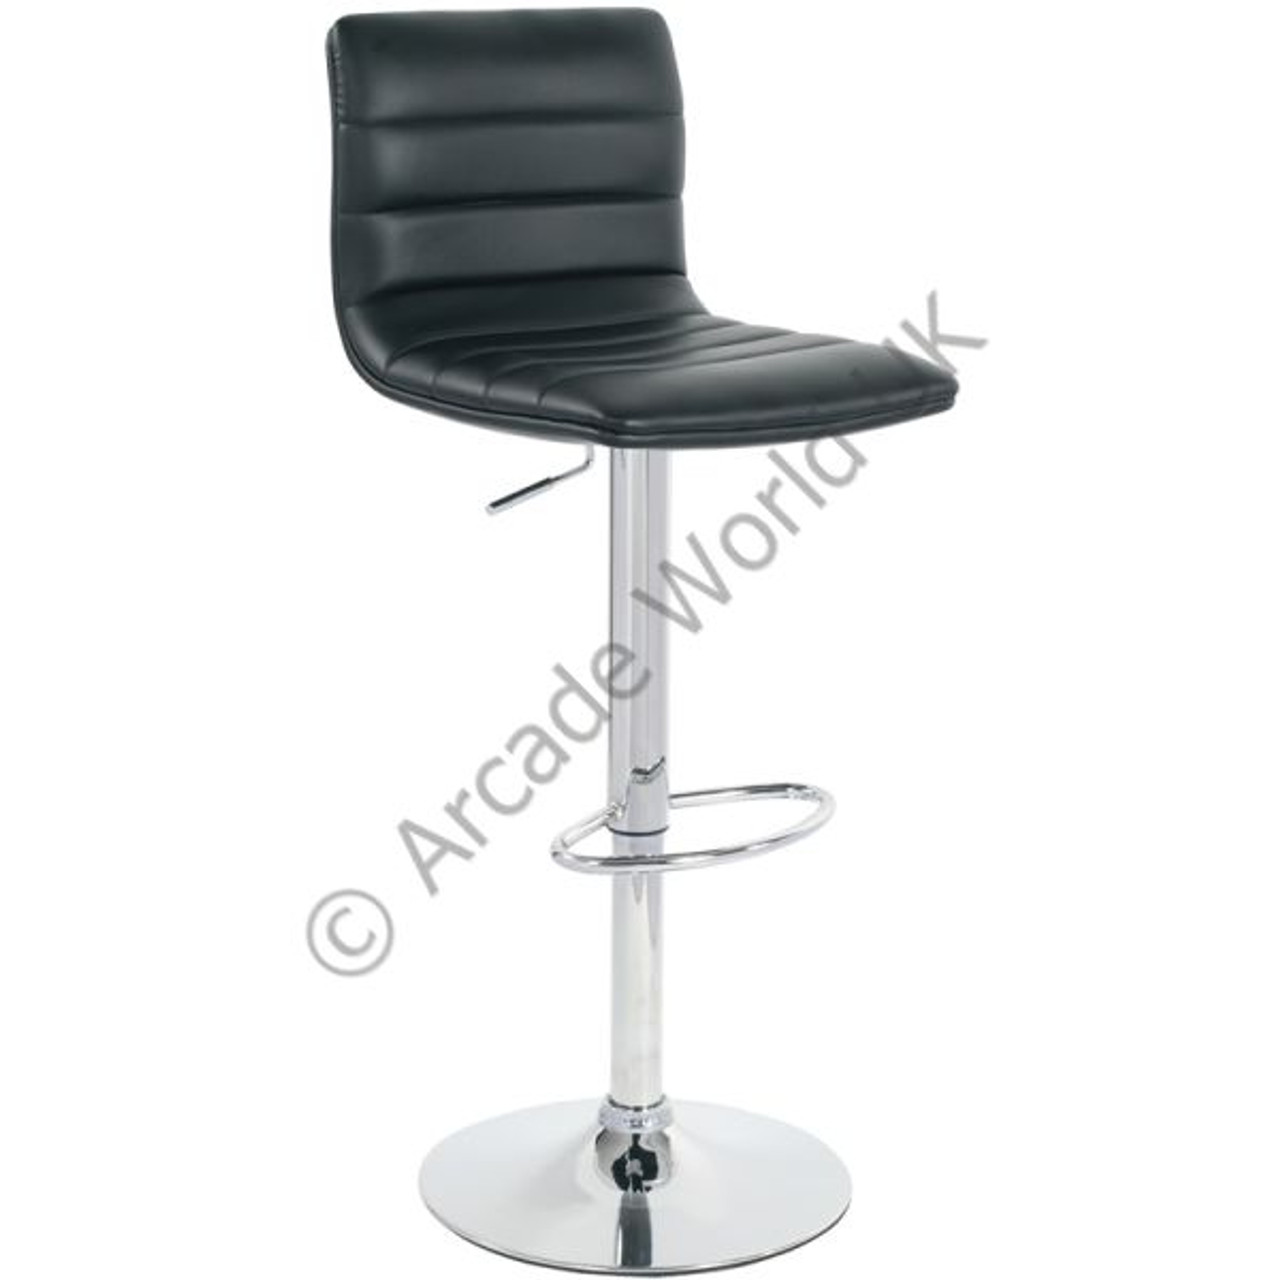 Incredible Aldo Chrome Bar Stool Creativecarmelina Interior Chair Design Creativecarmelinacom